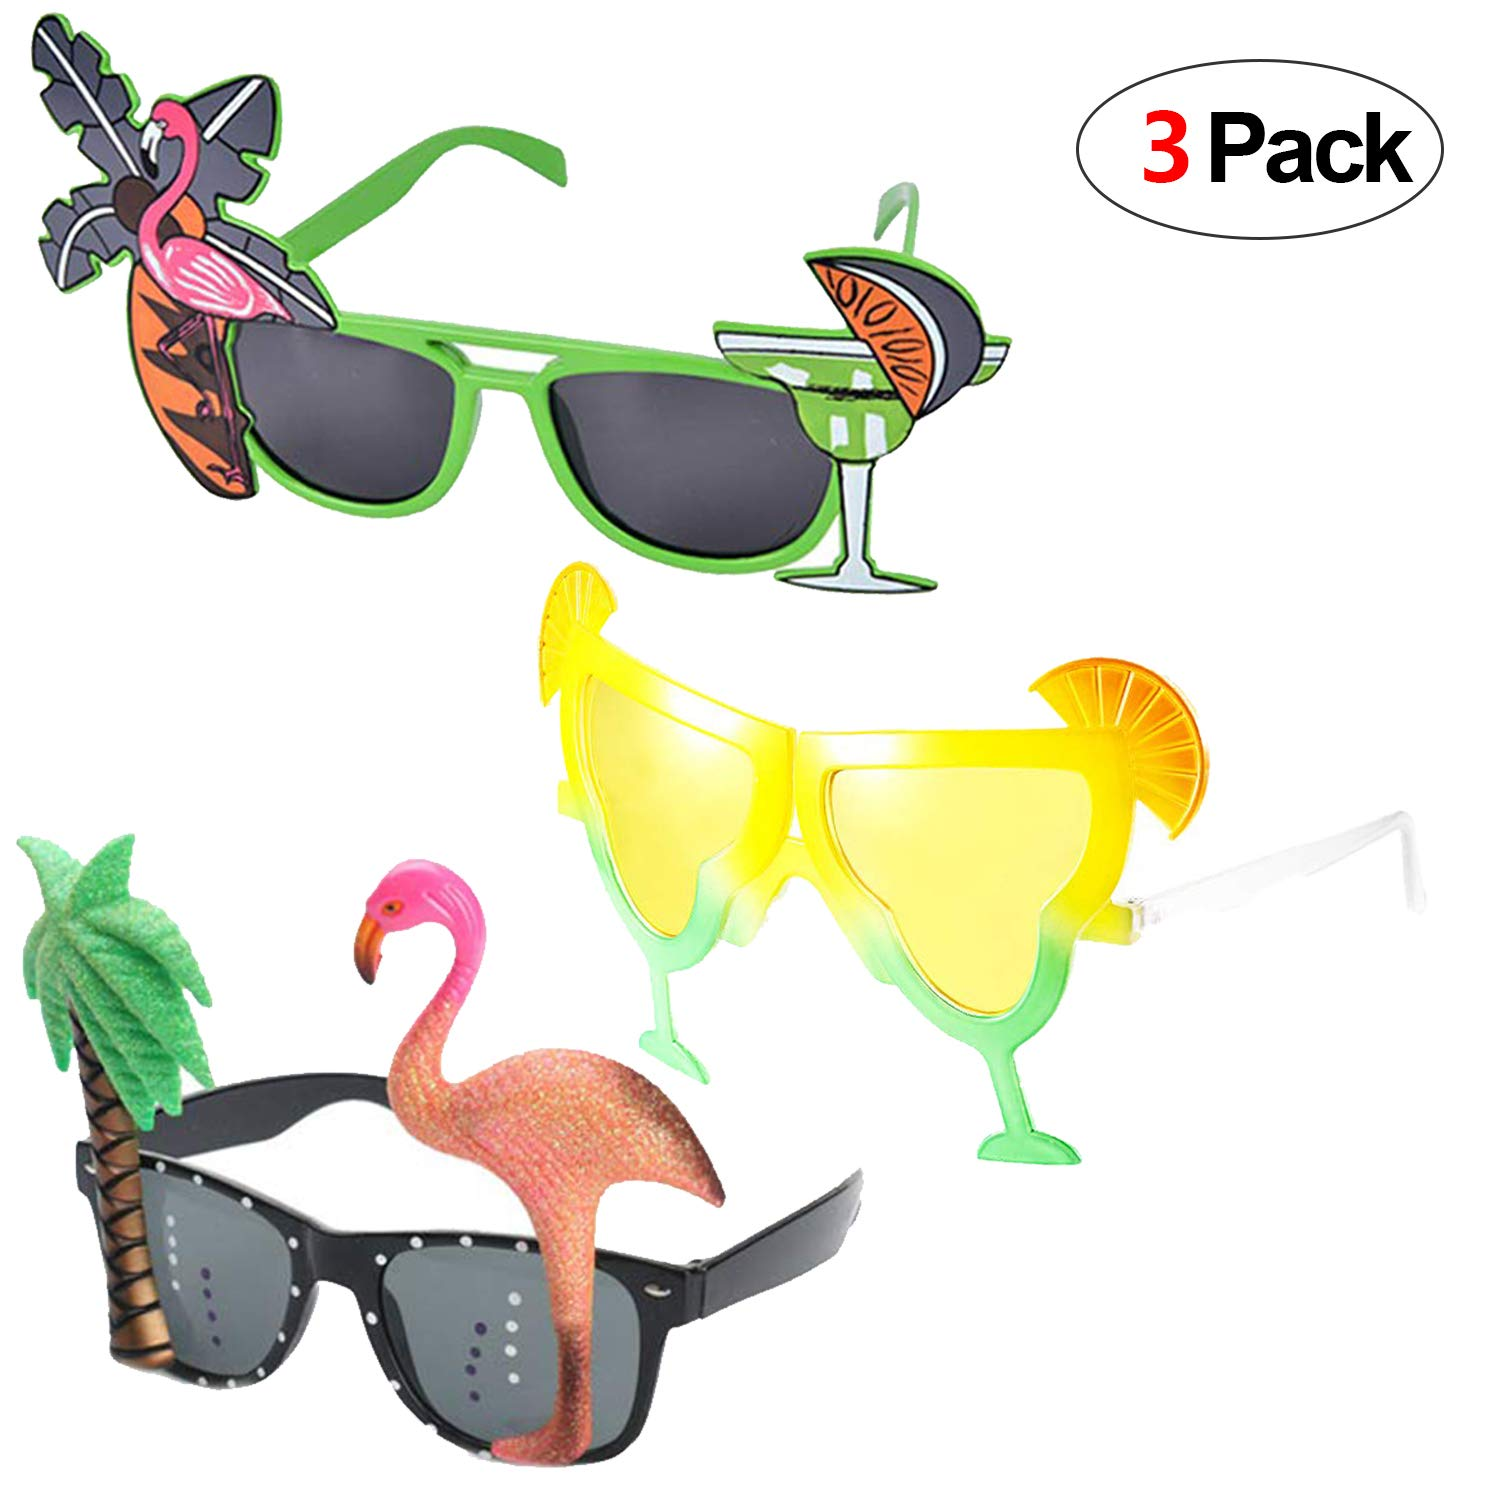 Howaf 3 Pairs Hawaiian Glasses Novelty Party Sunglasses Eyewear for ... picture library stock